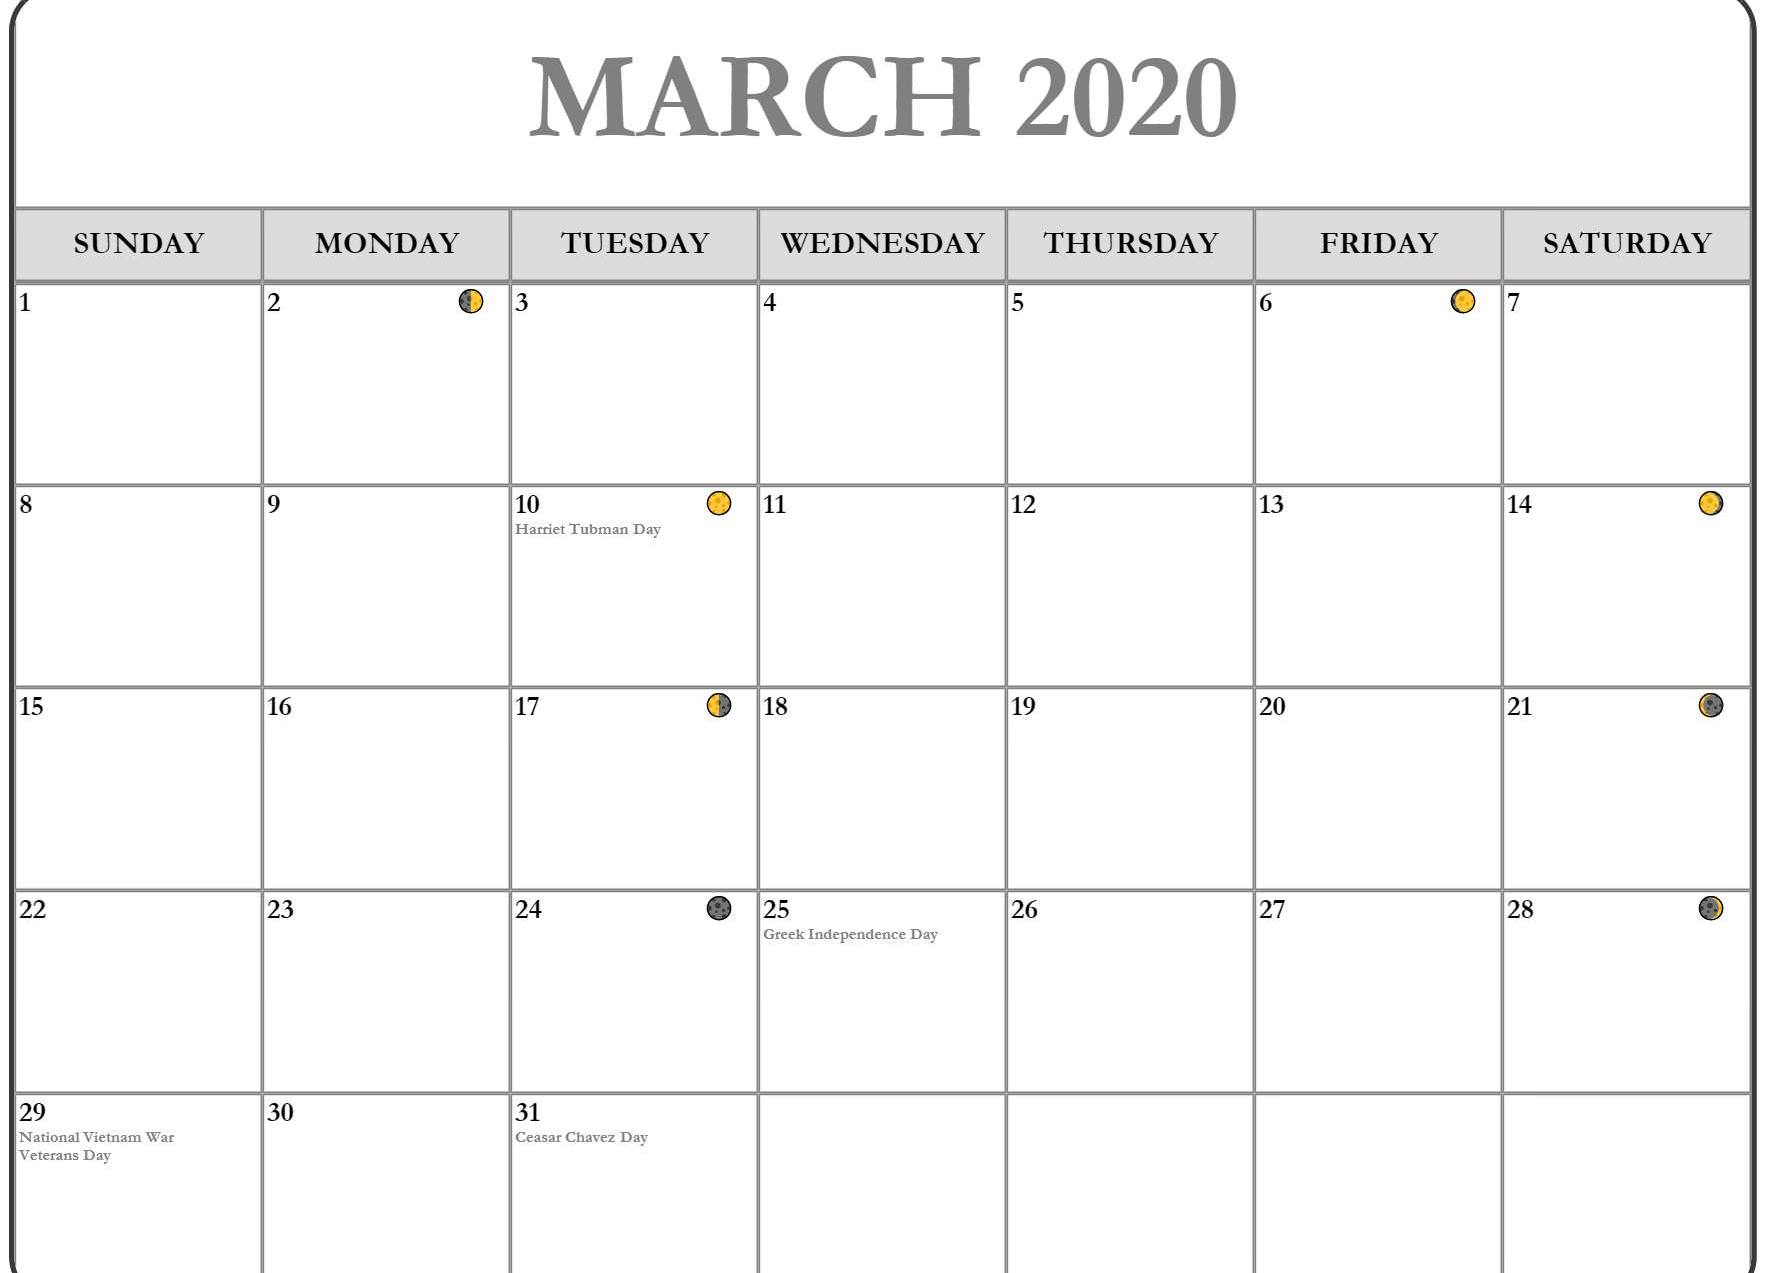 March 2020 Calendar With Holidays Australia